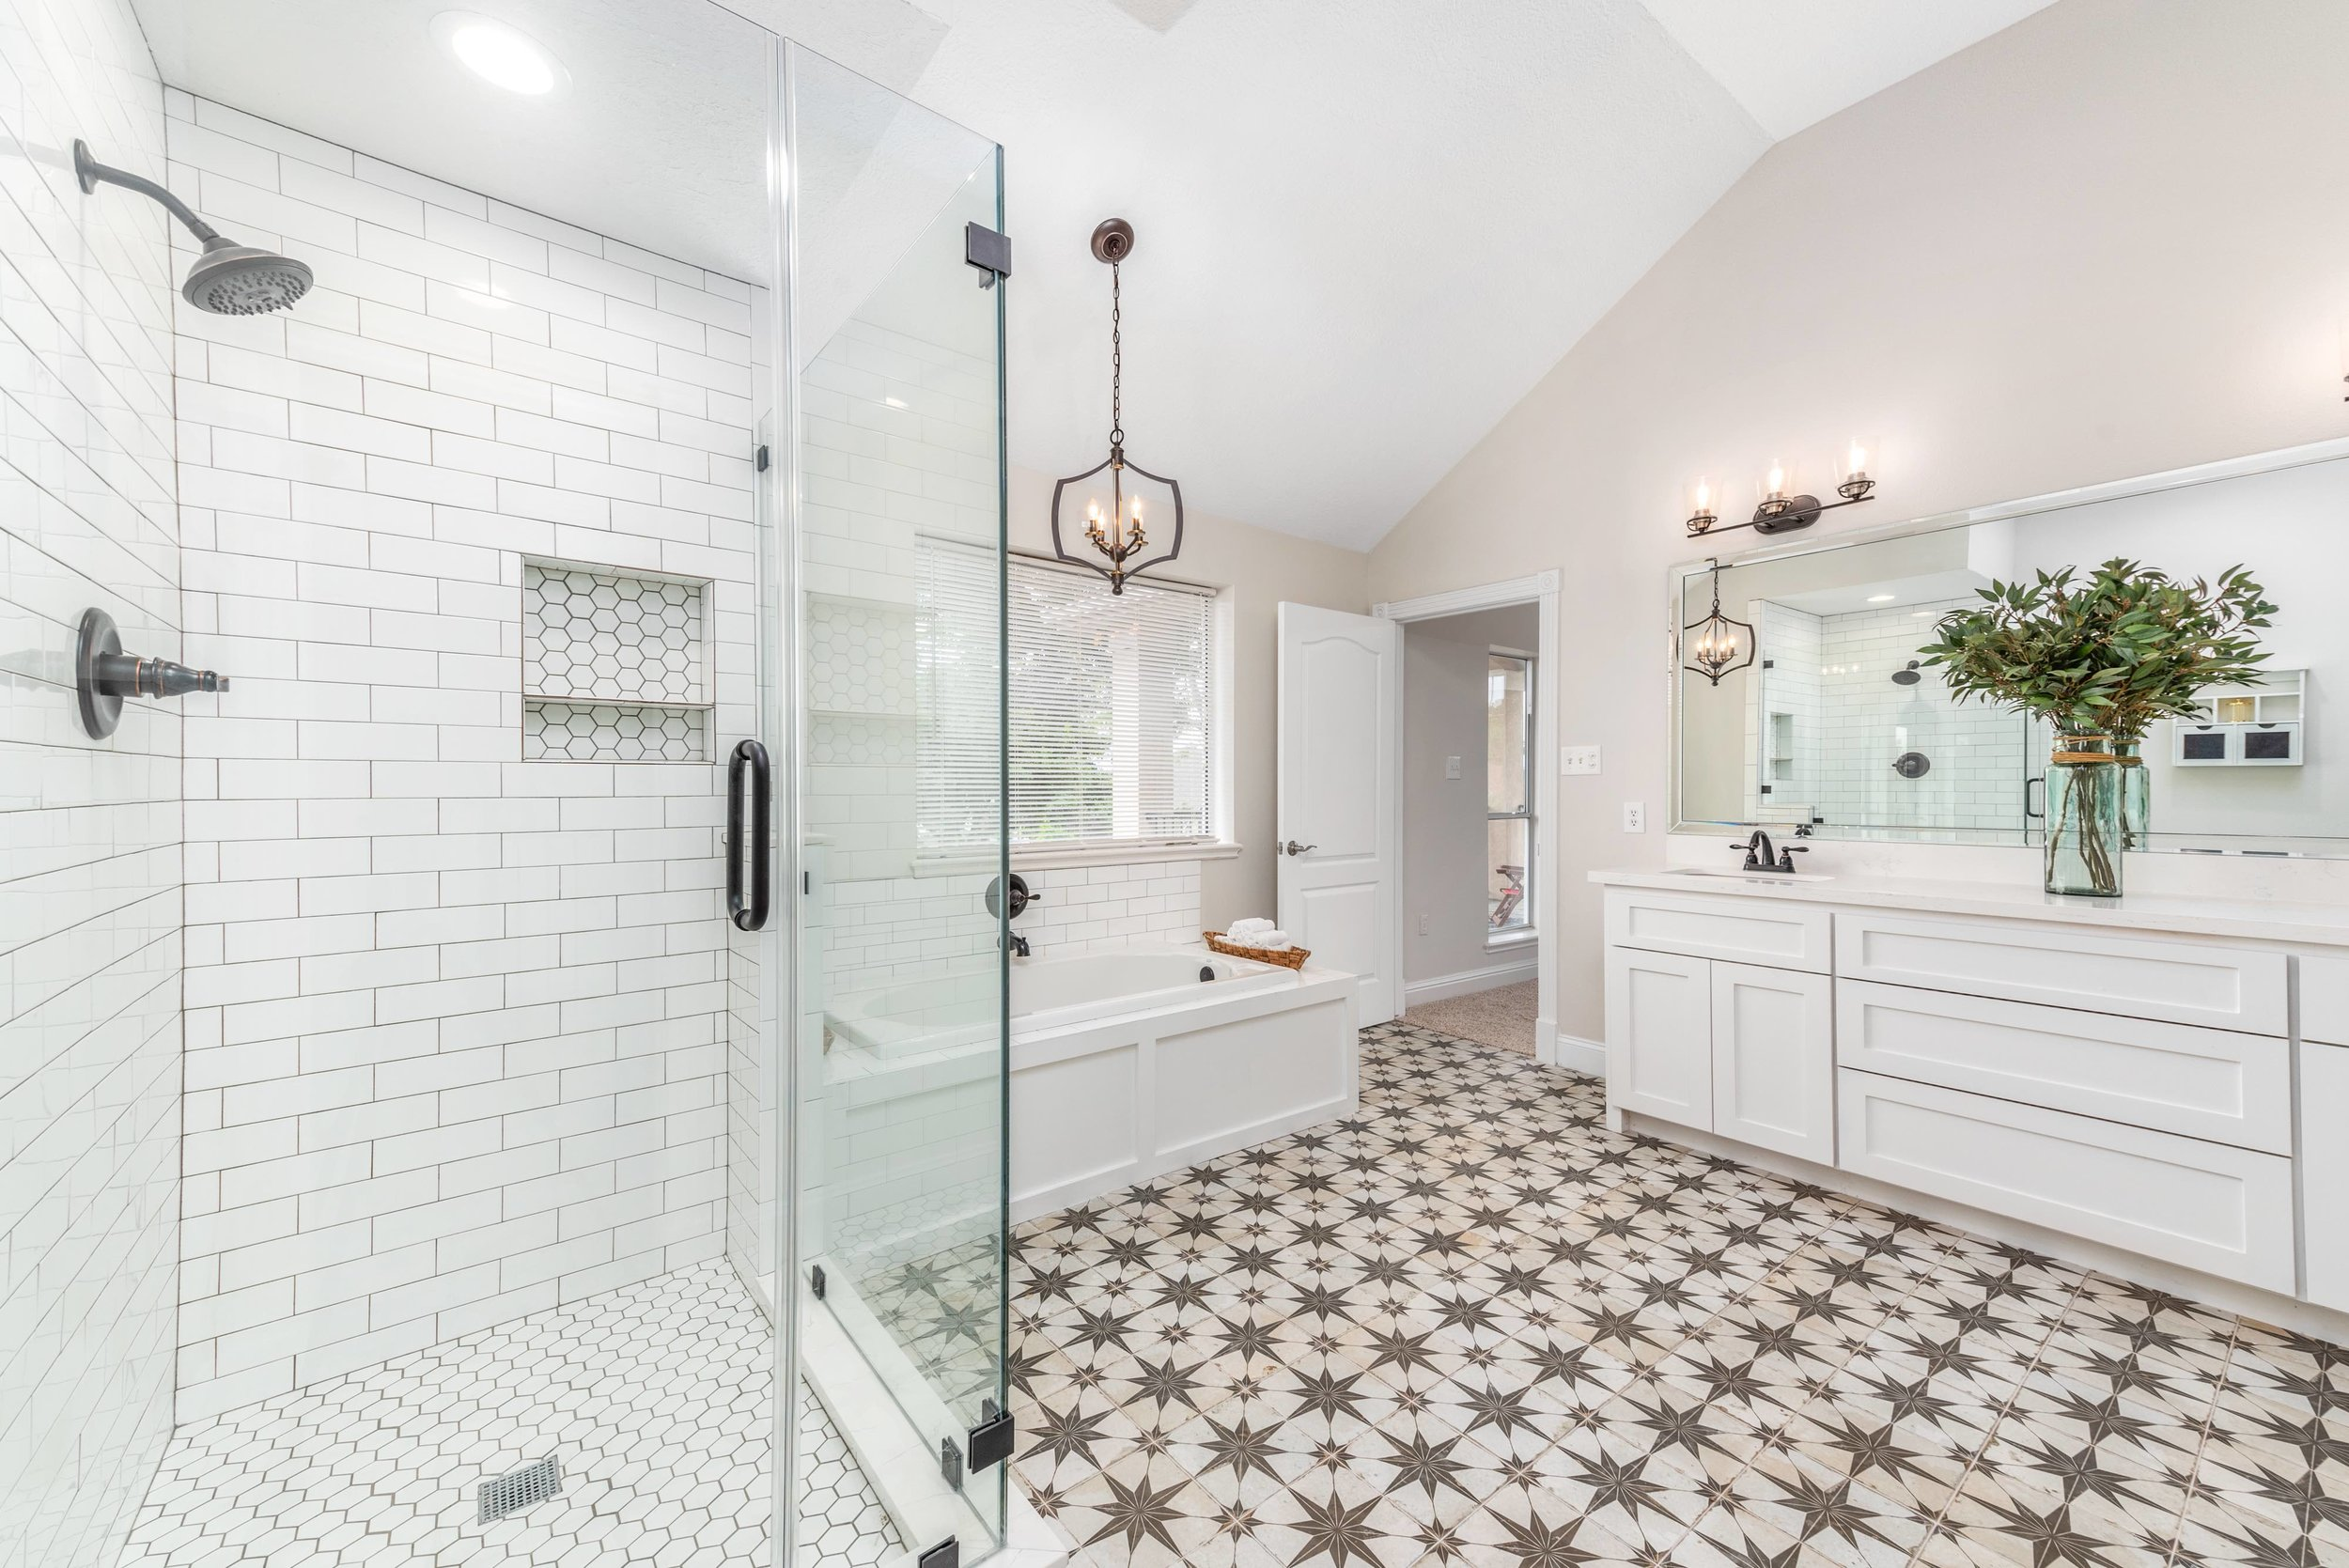 Stunning farmhouse master bathroom remodel. This bathroom features a frameless glass shower, antiqued Spanish tile, subway tile, quartz countertops, and bright natural lighting.